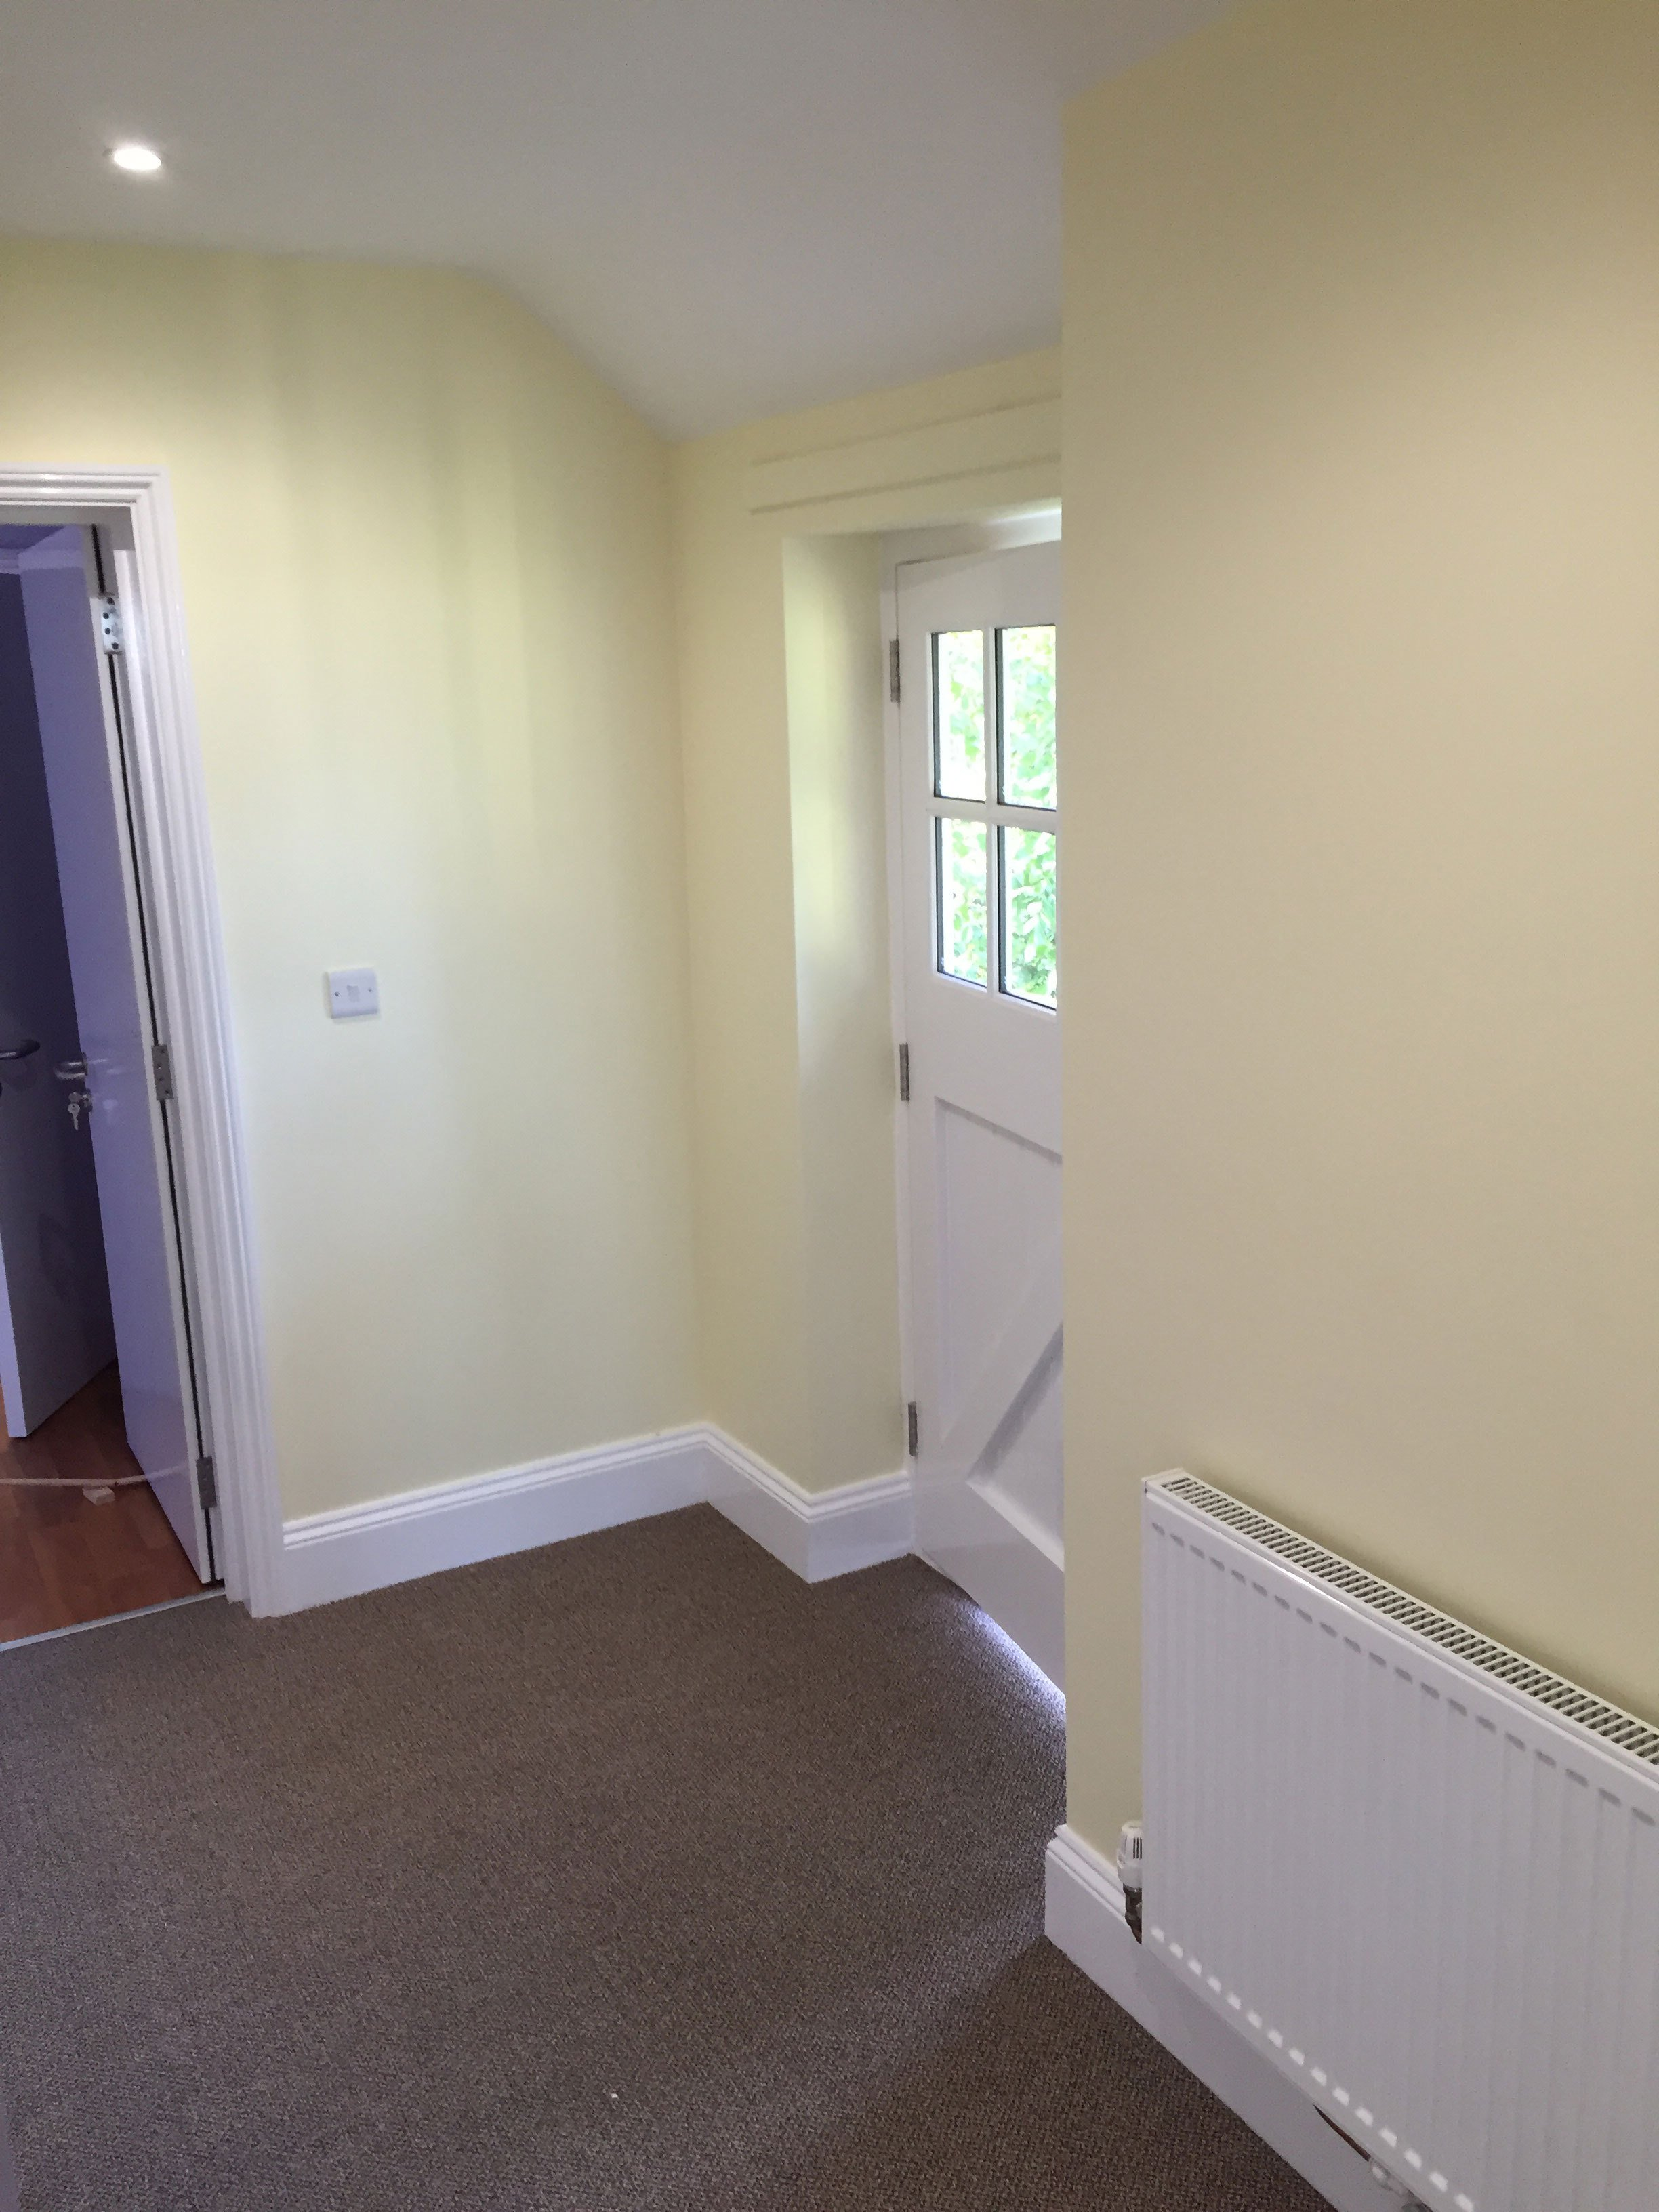 Room painted by professionals in Grantham, NG